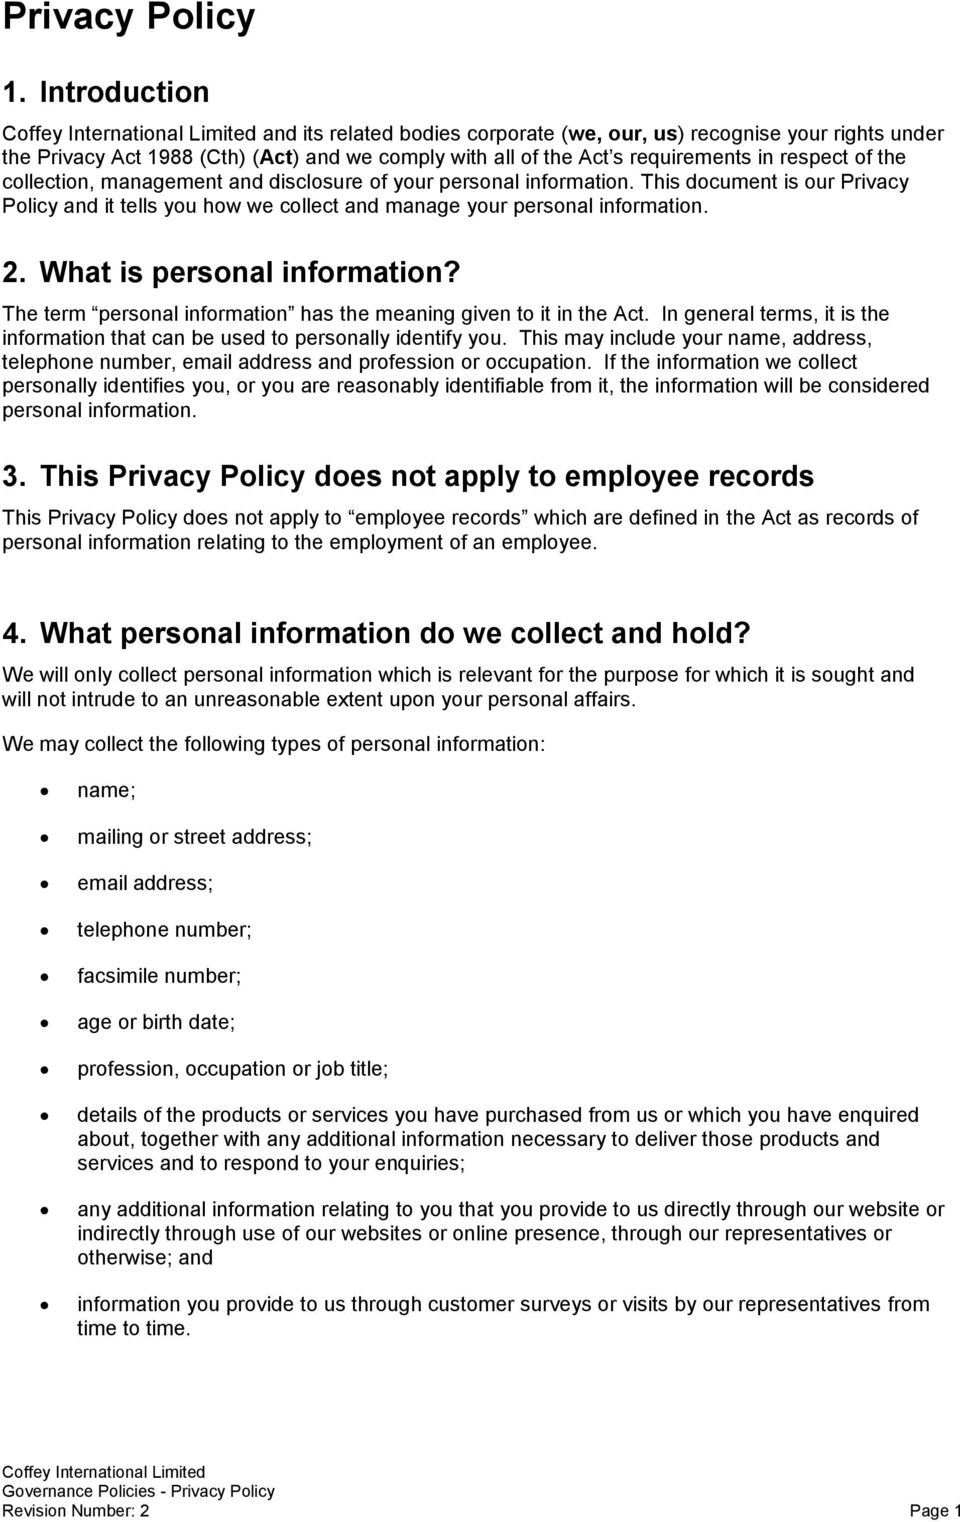 in respect of the collection, management and disclosure of your personal information. This document is our Privacy Policy and it tells you how we collect and manage your personal information. 2.